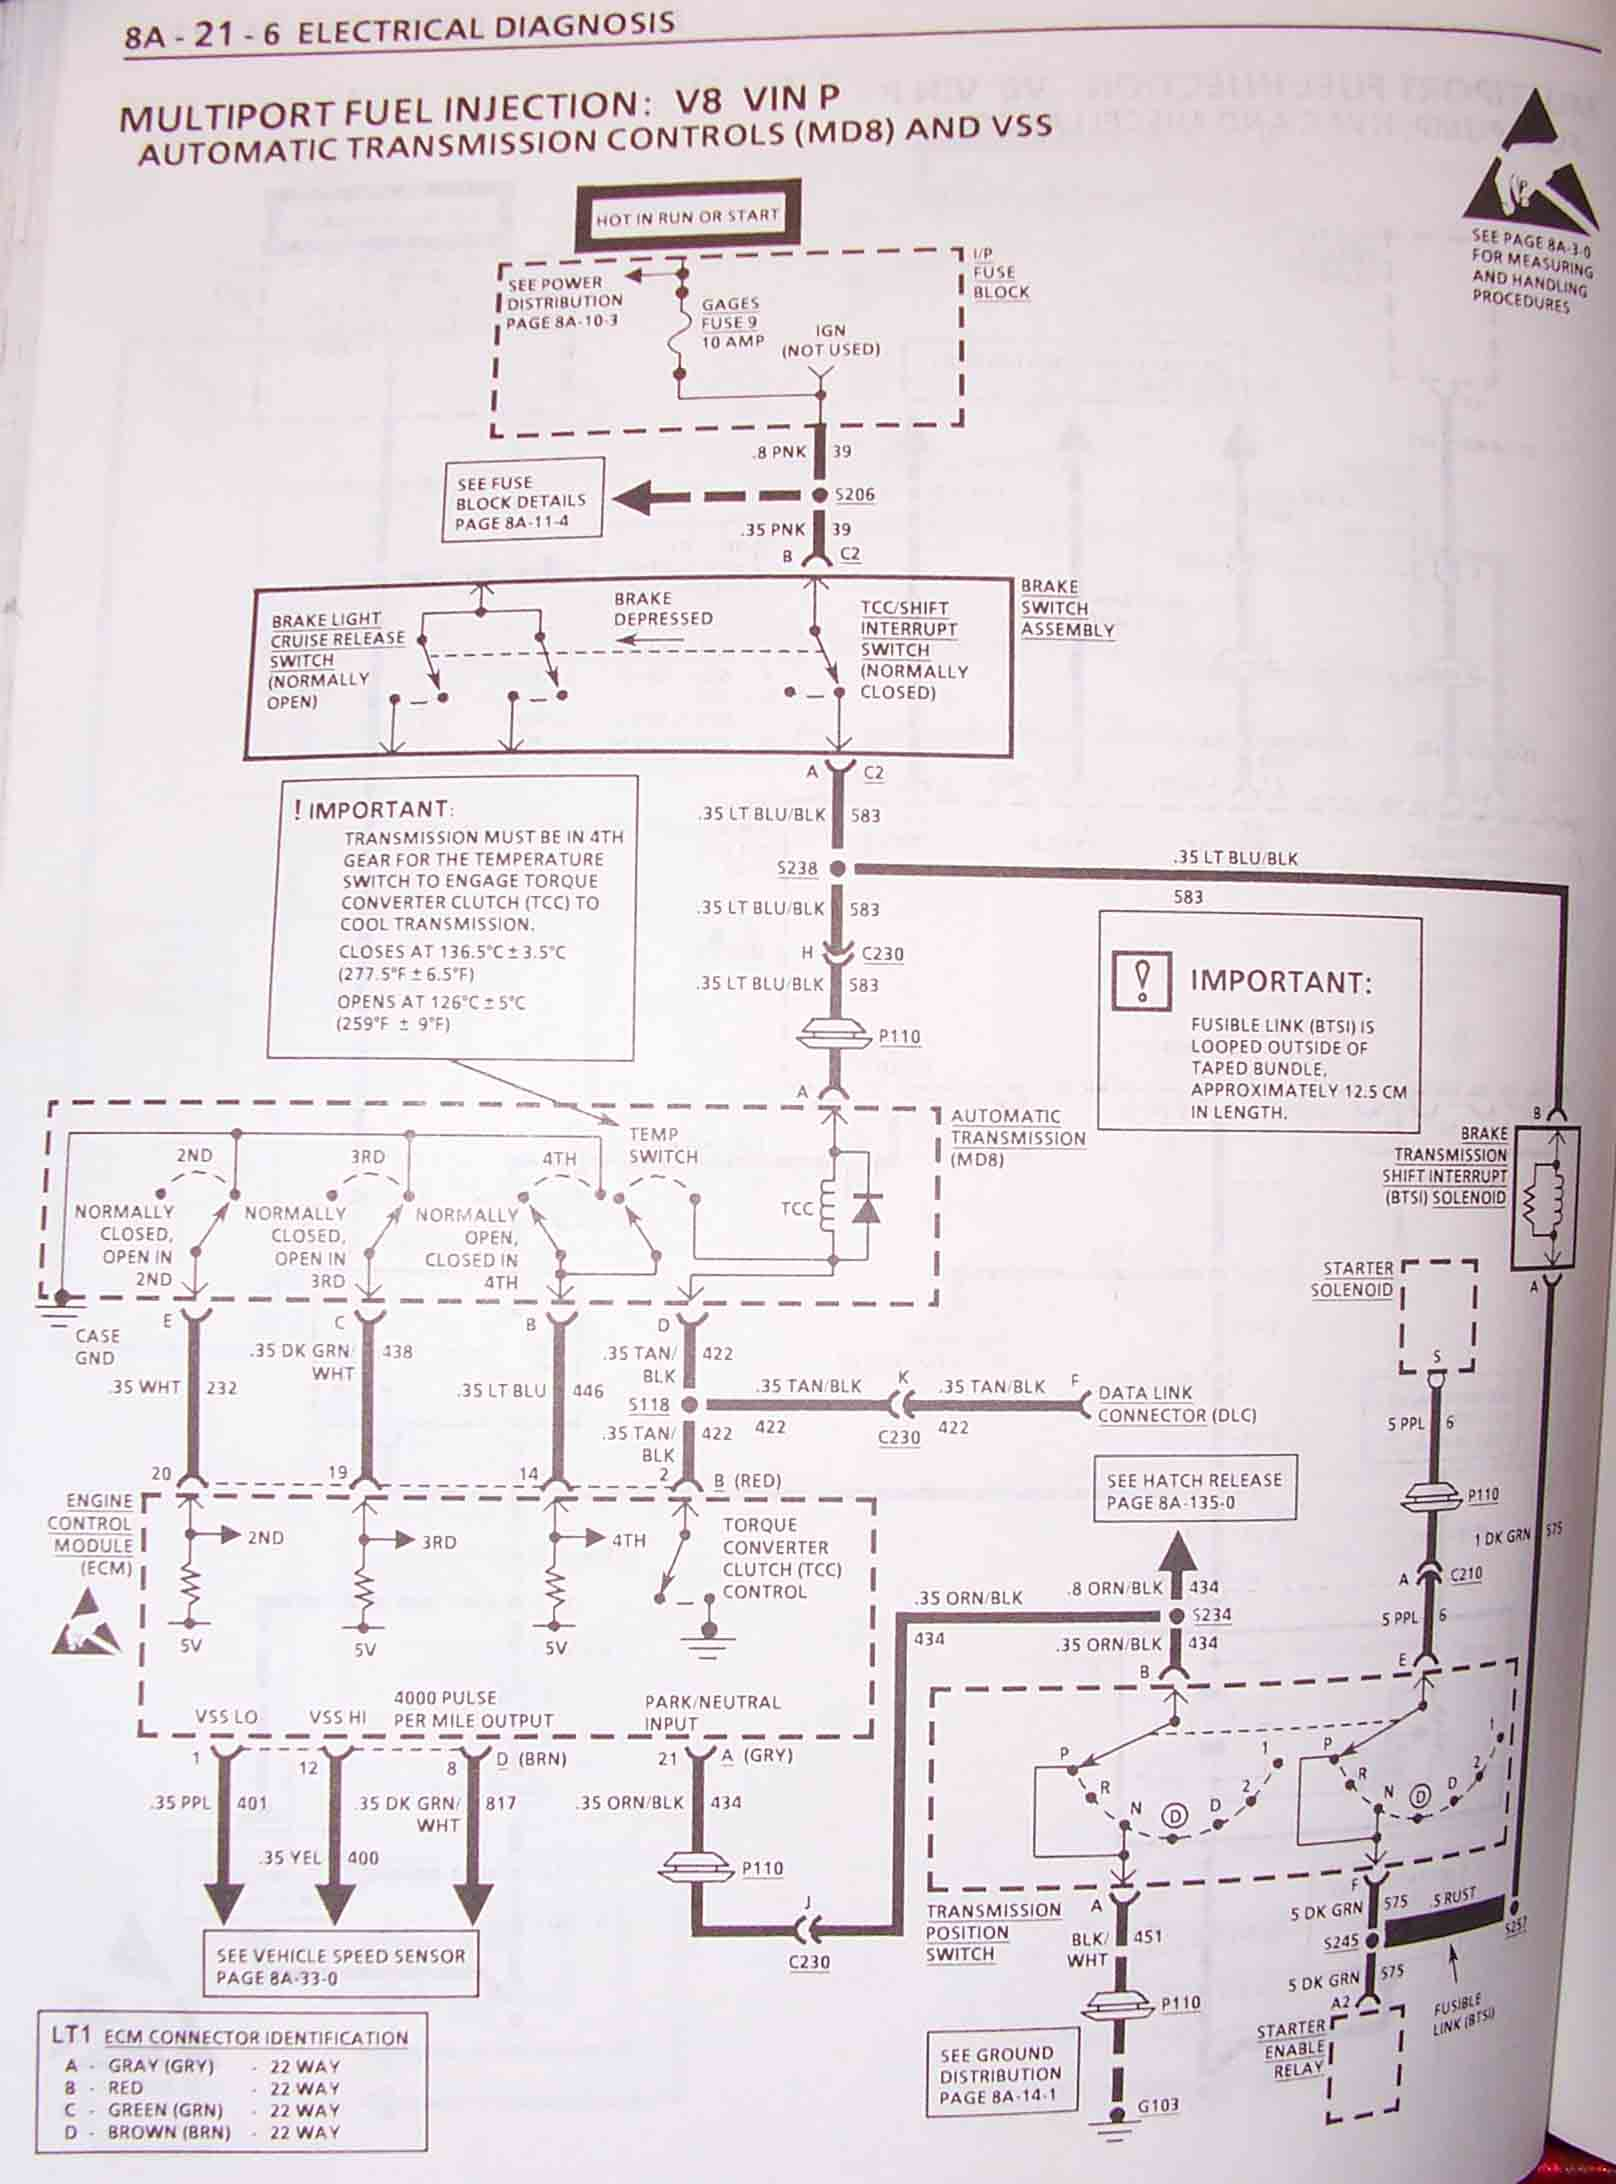 95 Camaro Wiring Diagram On Diagram For 1995 Chevy Lt1 Wiring Harness